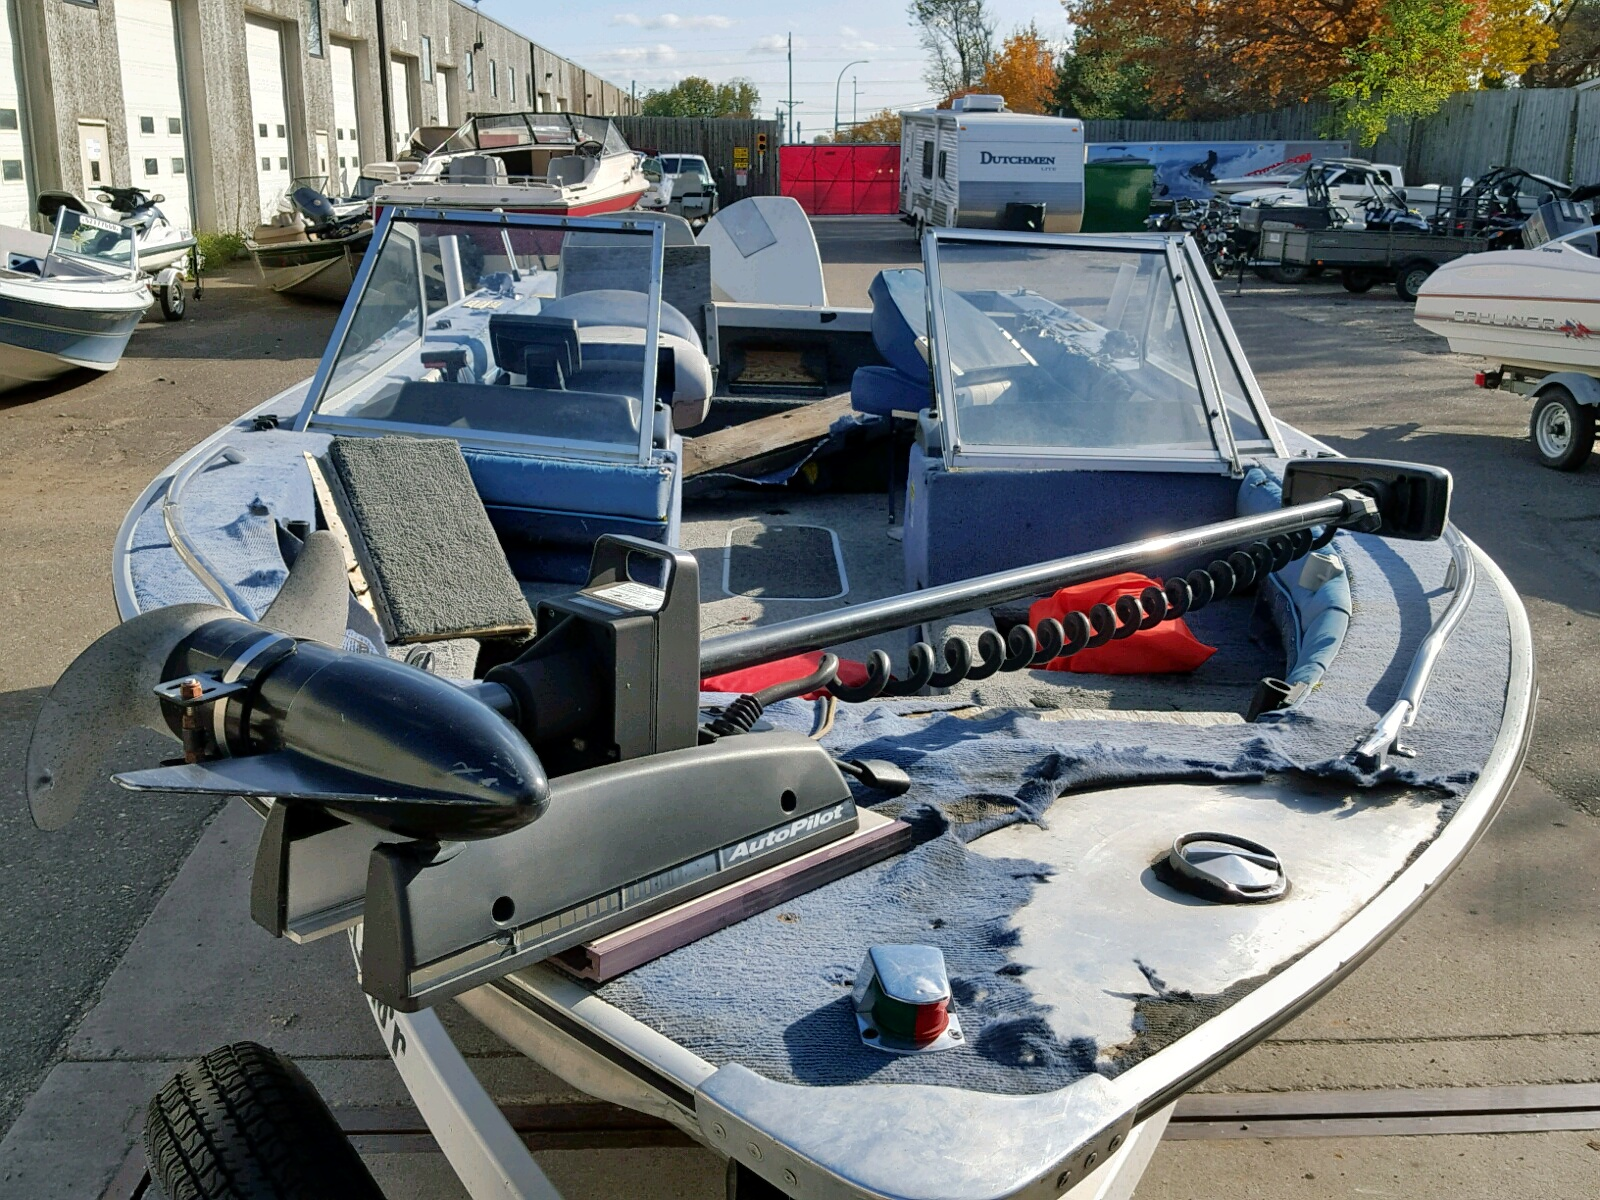 1988 Bluf Boat front view